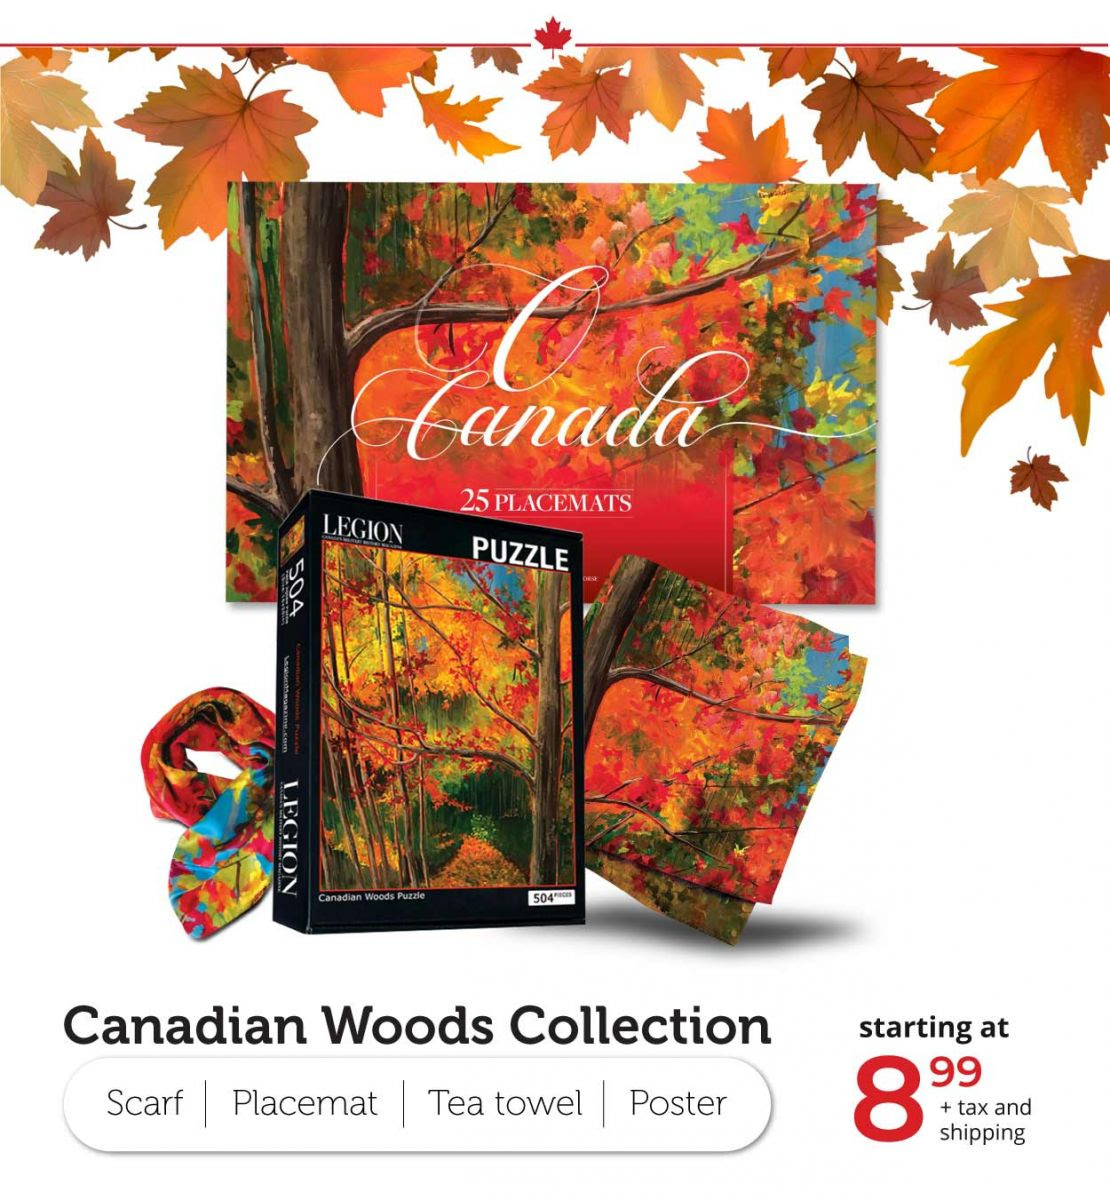 Canadian Woods Collection